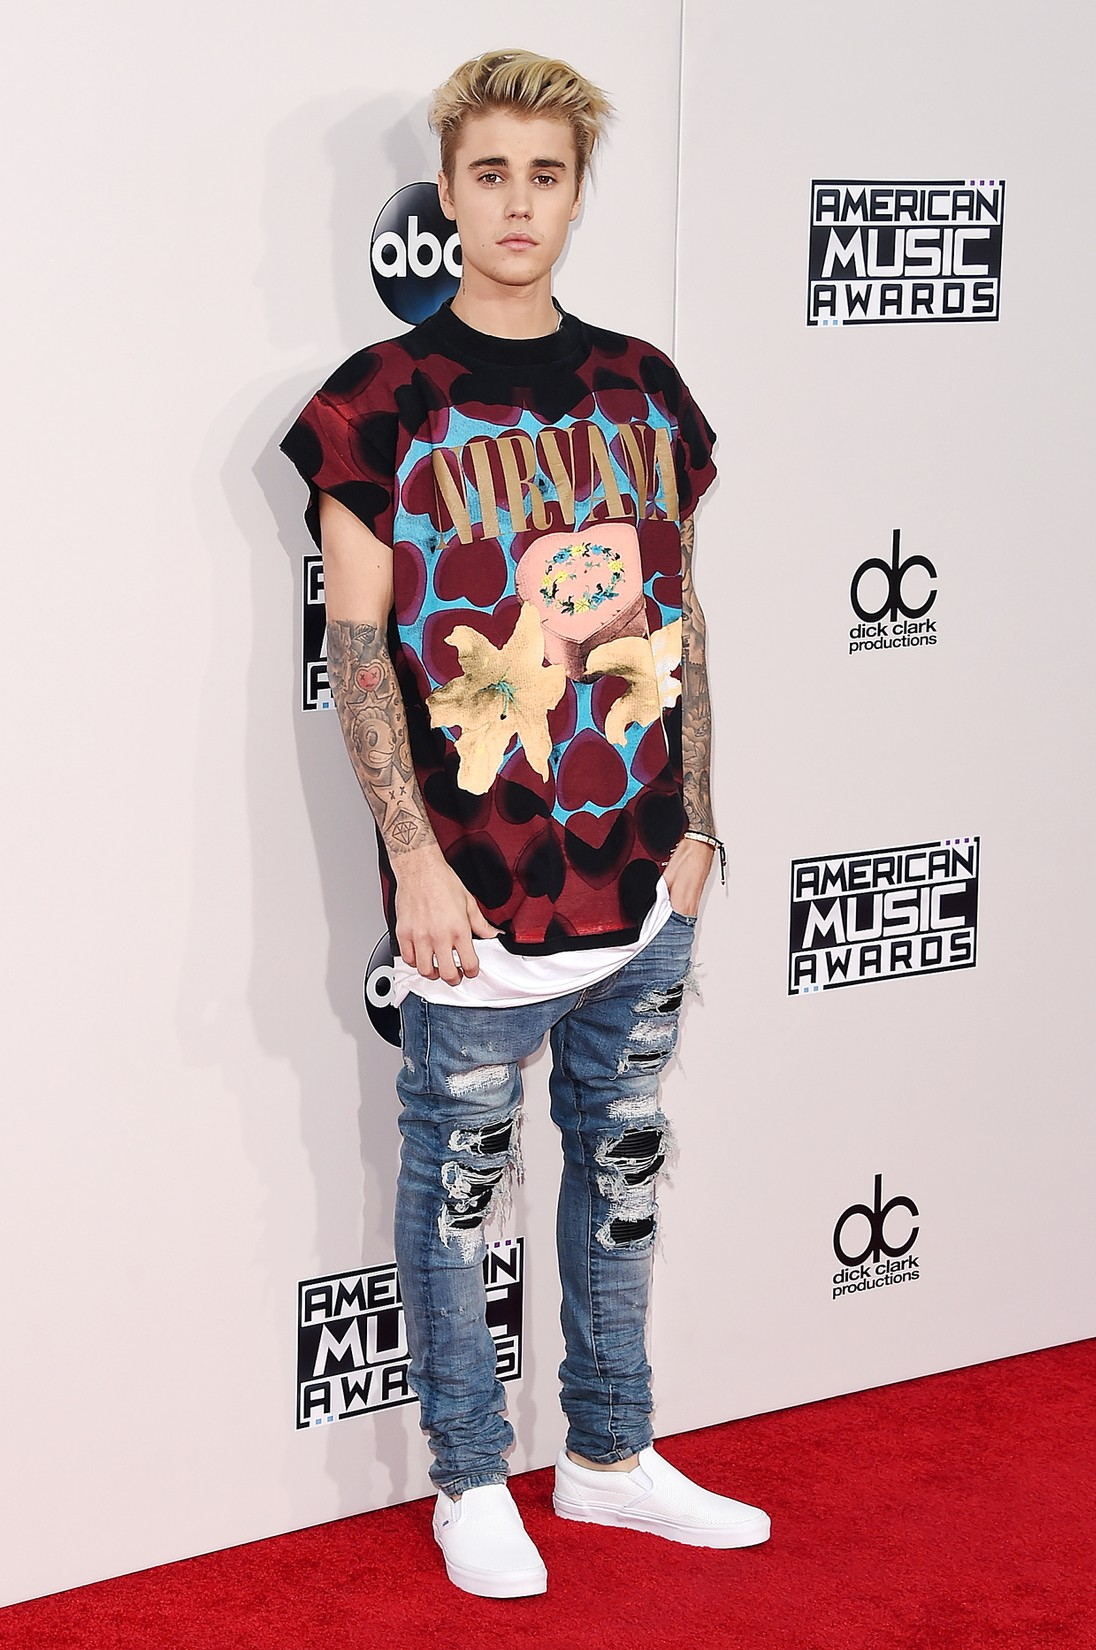 Justin Bieber attends the 2015 American Music Awards at Microsoft Theater on Nov. 22, 2015 in Los Angeles.